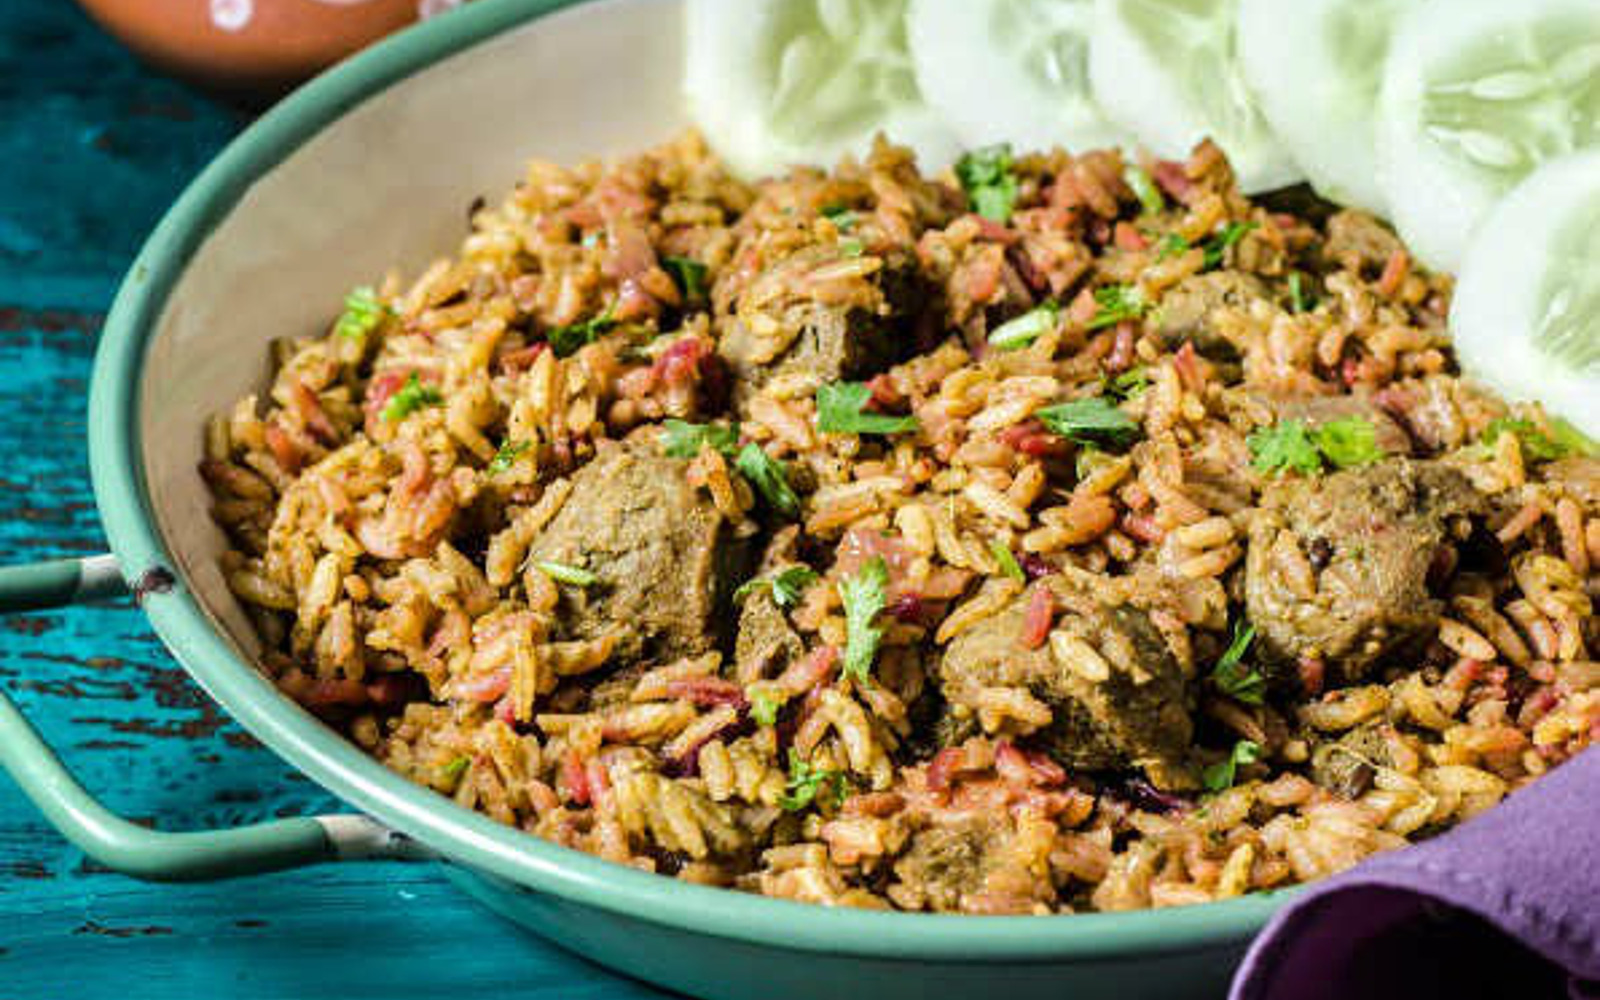 High-Protein Beet Biryani With Basmati Rice